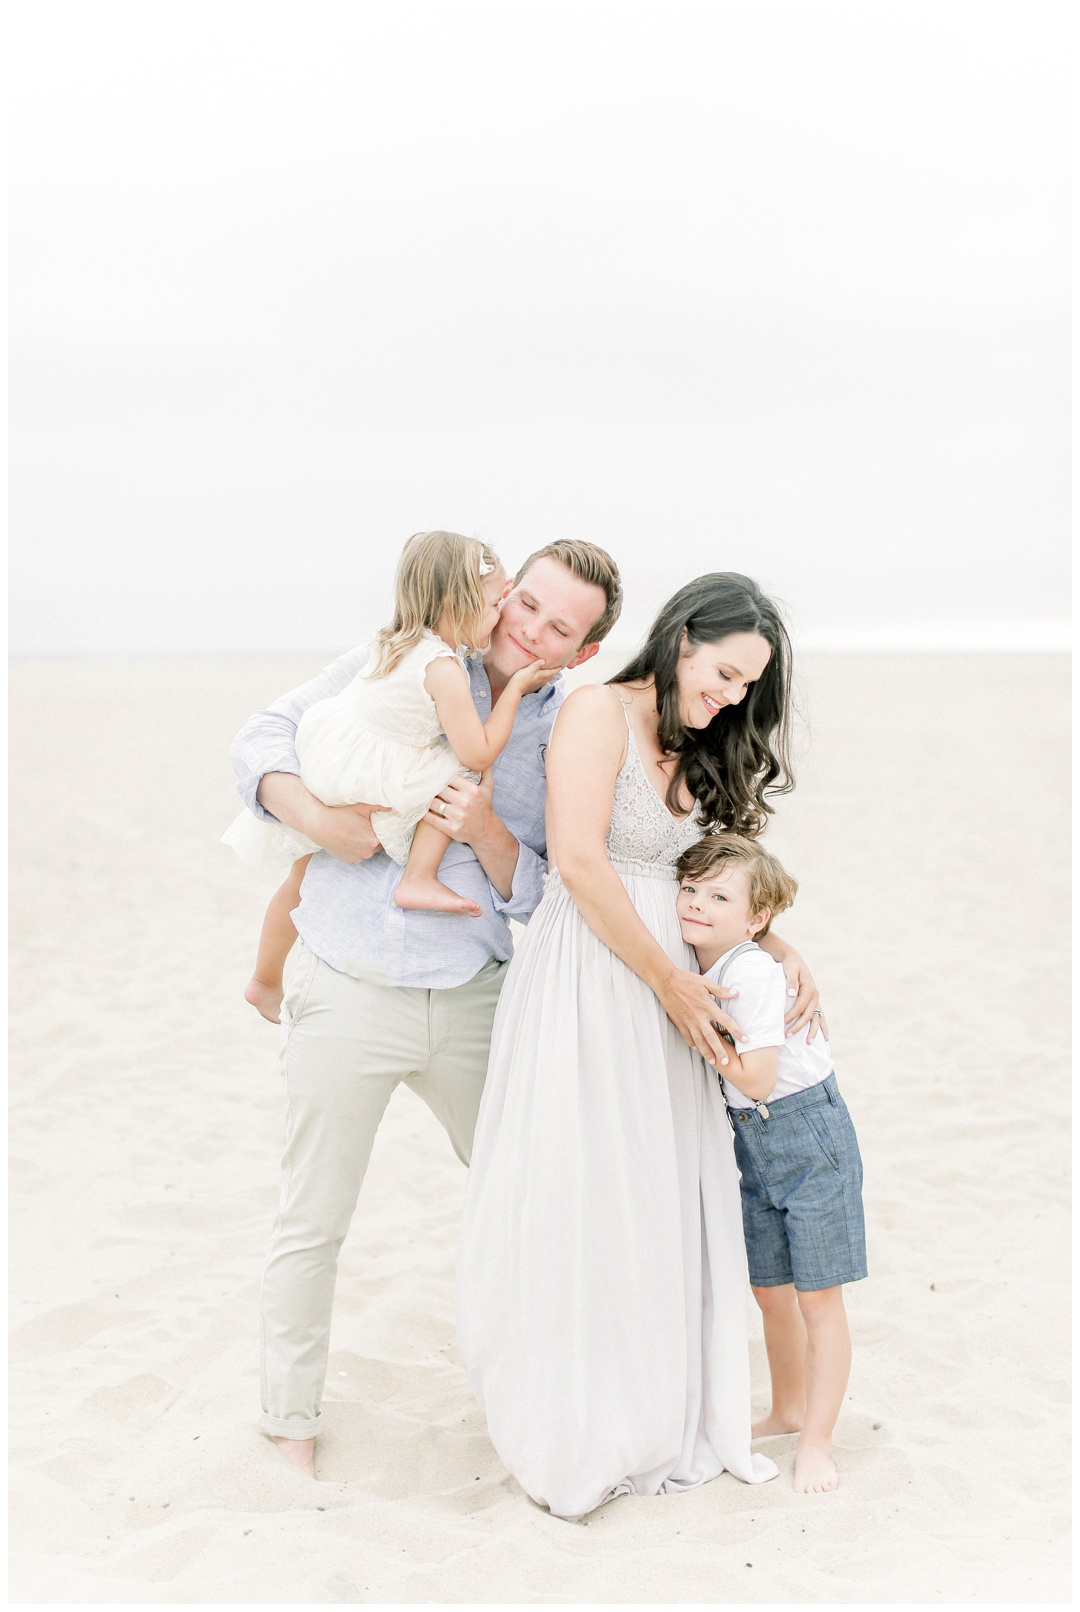 Huntington_Beach_Family_Photographer_The_Wood_Family_Lifestyle_Newport_Beach_Family_Photographer_Orange_County_Newborn_Photography_Cori_Kleckner_Photography_Orange_County_Beach_Photography_Huntington_Beach_Family_Session__1634.jpg